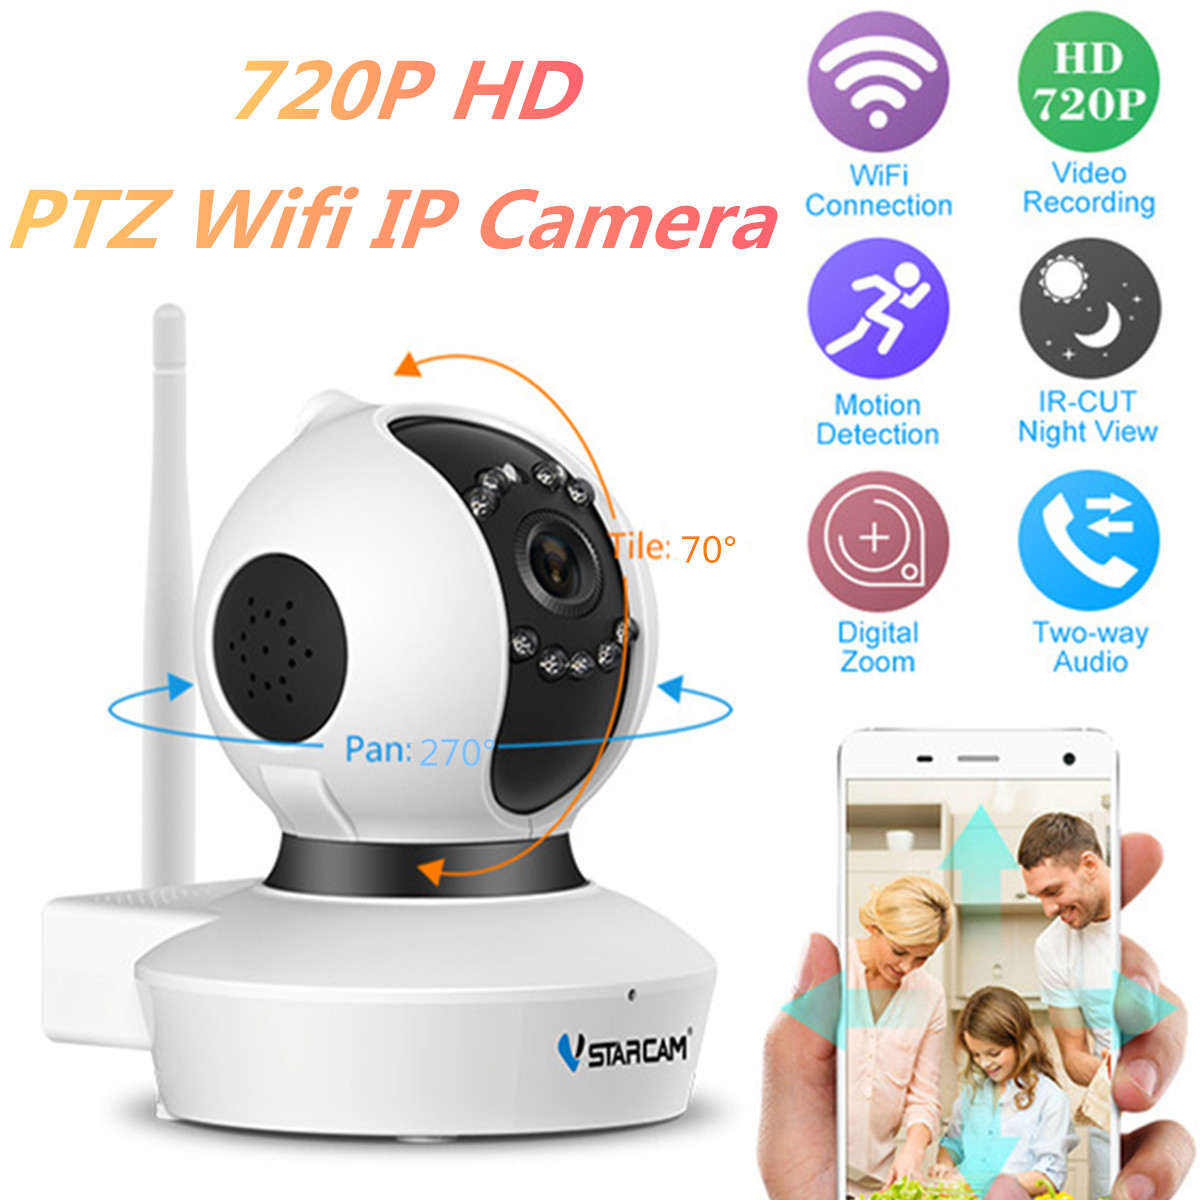 Wireless 720P Pan Tilt Network Security CCTV IP Camera 64GB TF US/EU/AU/UK Plug Night Vision WiFi Webcam Infrared ABS Voice vstarcam c7815wip 1 0 mp 720p outdoor waterproof wireless ip network camera w onvif2 0 tf us plug